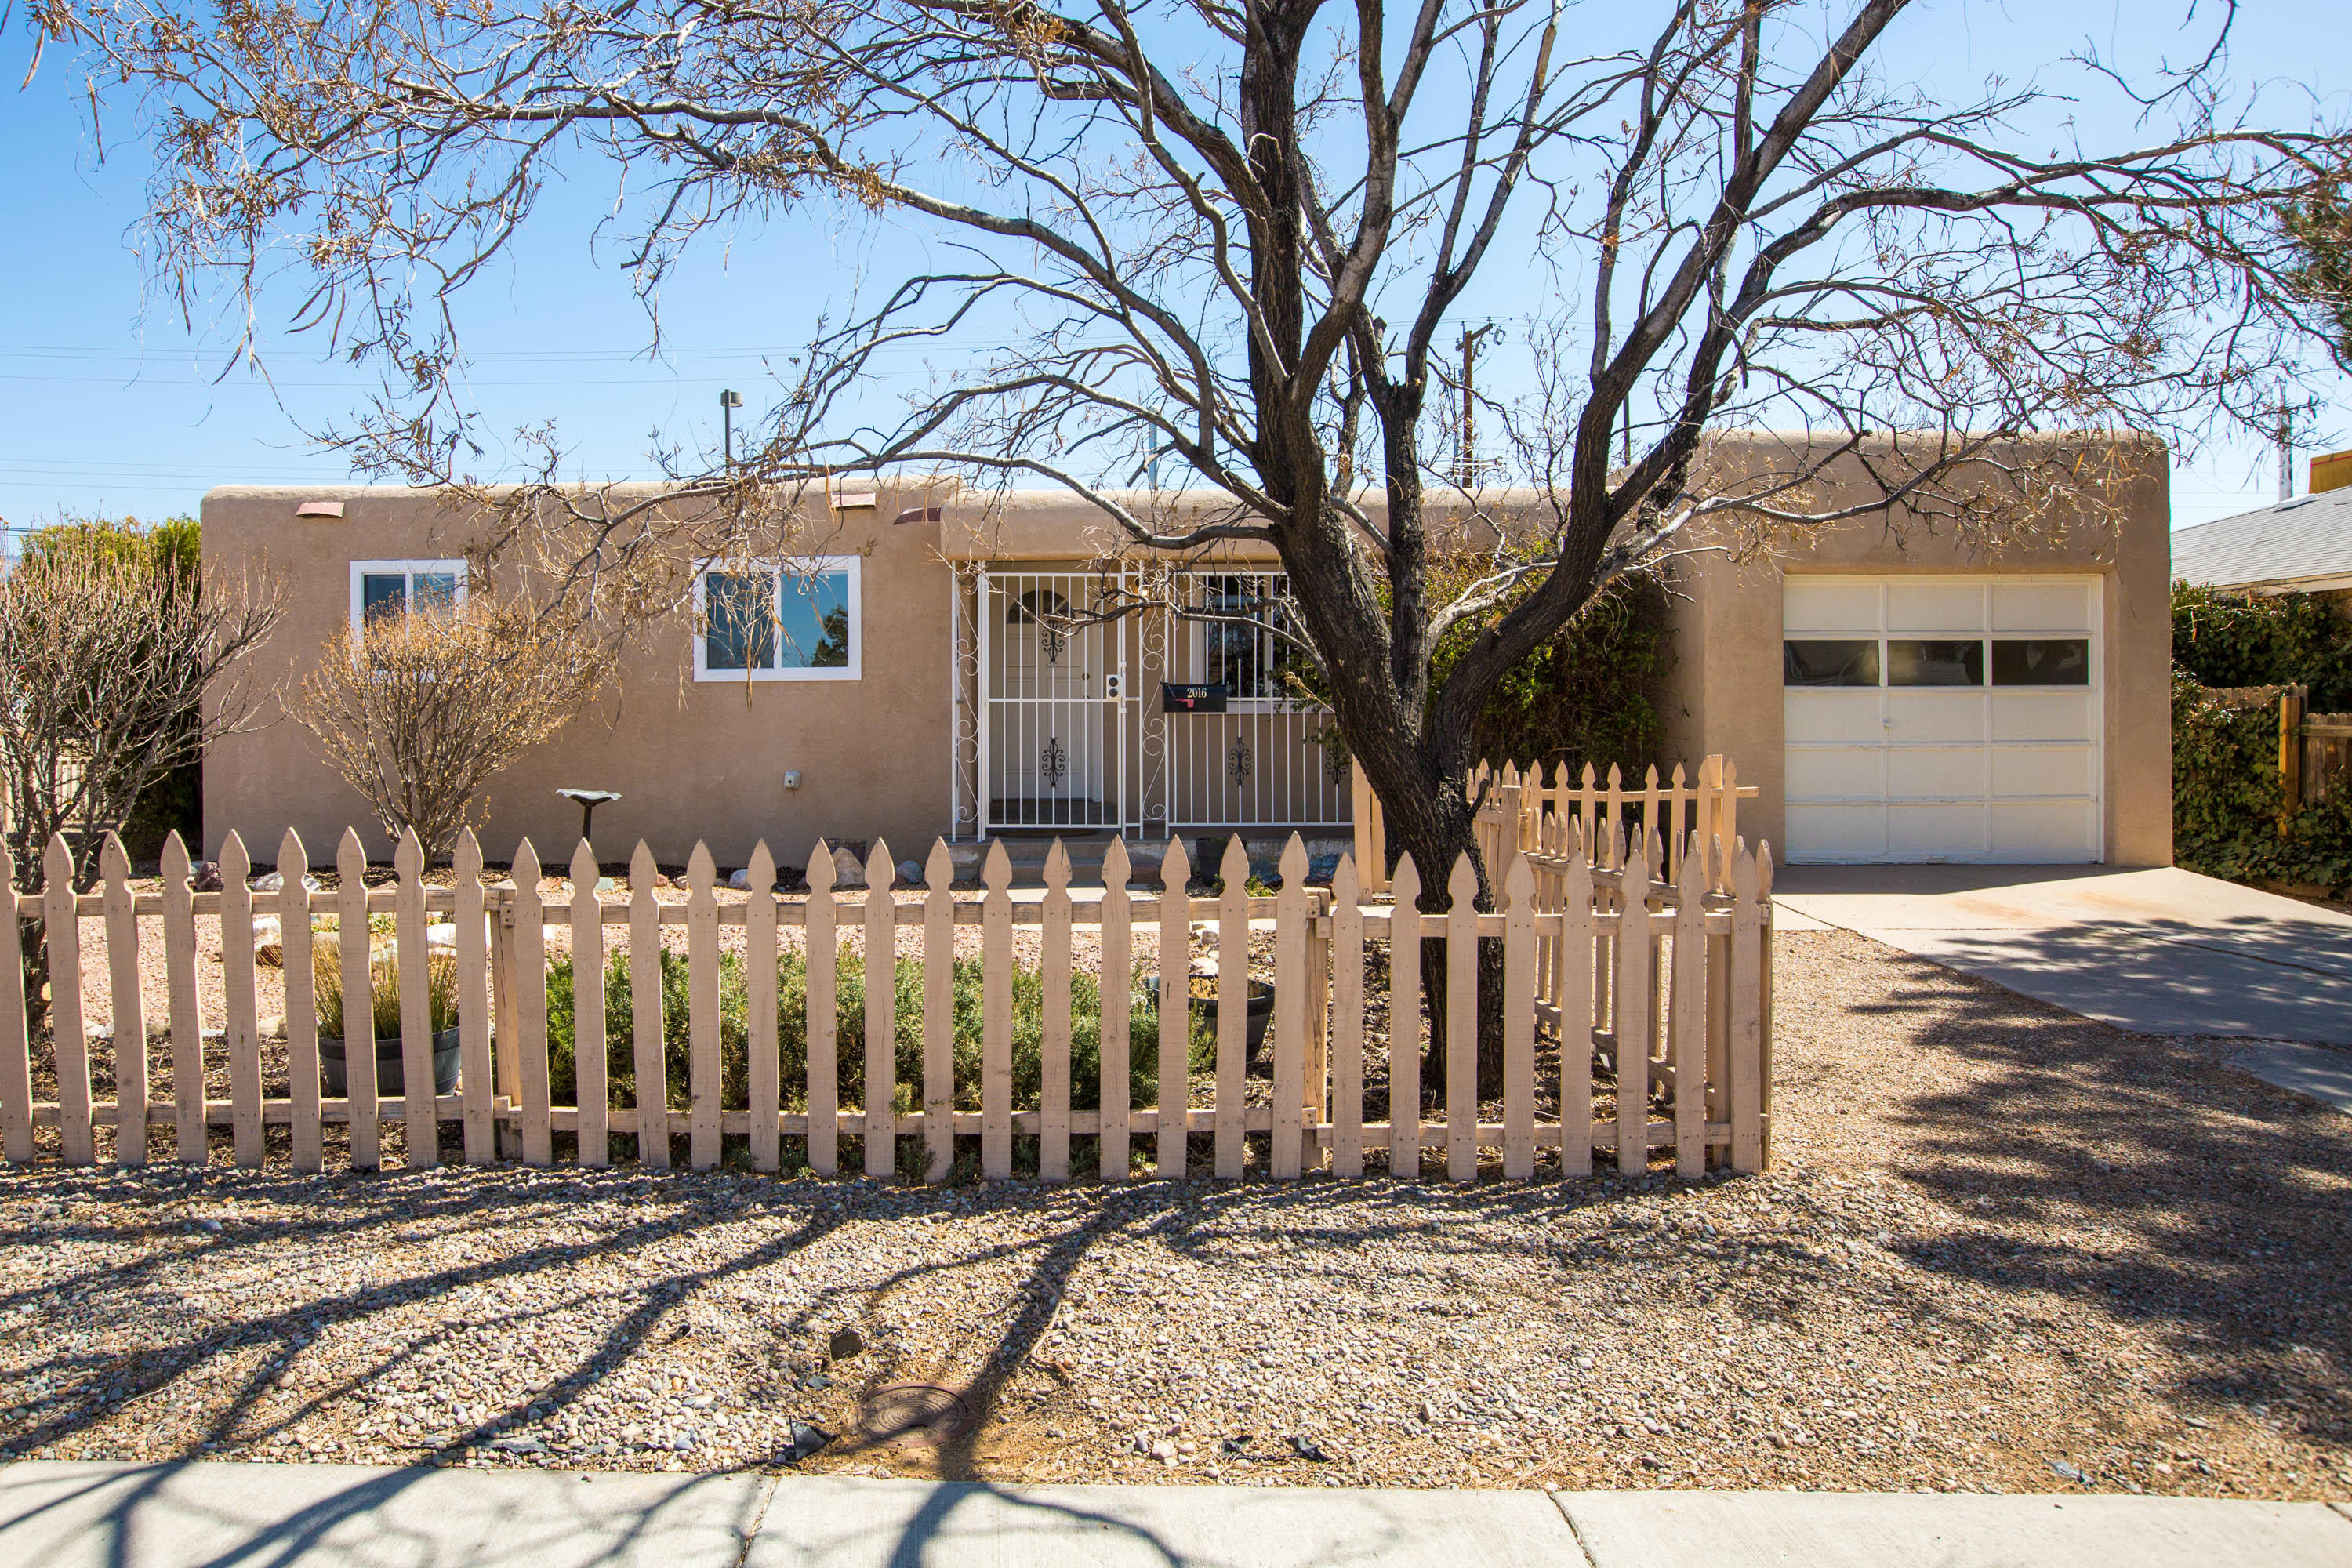 Super sweet one level ready for you to move right into!  New windows (except kitchen), electrical panel, evaporative cooler, carpet & vinyl flooring, new light fixtures in dining room, kitchen and laundry++ freshly painted too!! Water line from street to house replaced in 2012 and stucco done in 2016. Large living room with woodburning fireplace. Nice baths with tile shower surrounds! Roomy kitchen with portable dishwasher, gas range/oven and refrigerator stays!  Laundry with lots of storage cabinets and access to outside!  Located on large corner lot with gate for backyard access!! Nice floorplan! Large covered patio--great for entertaining!!